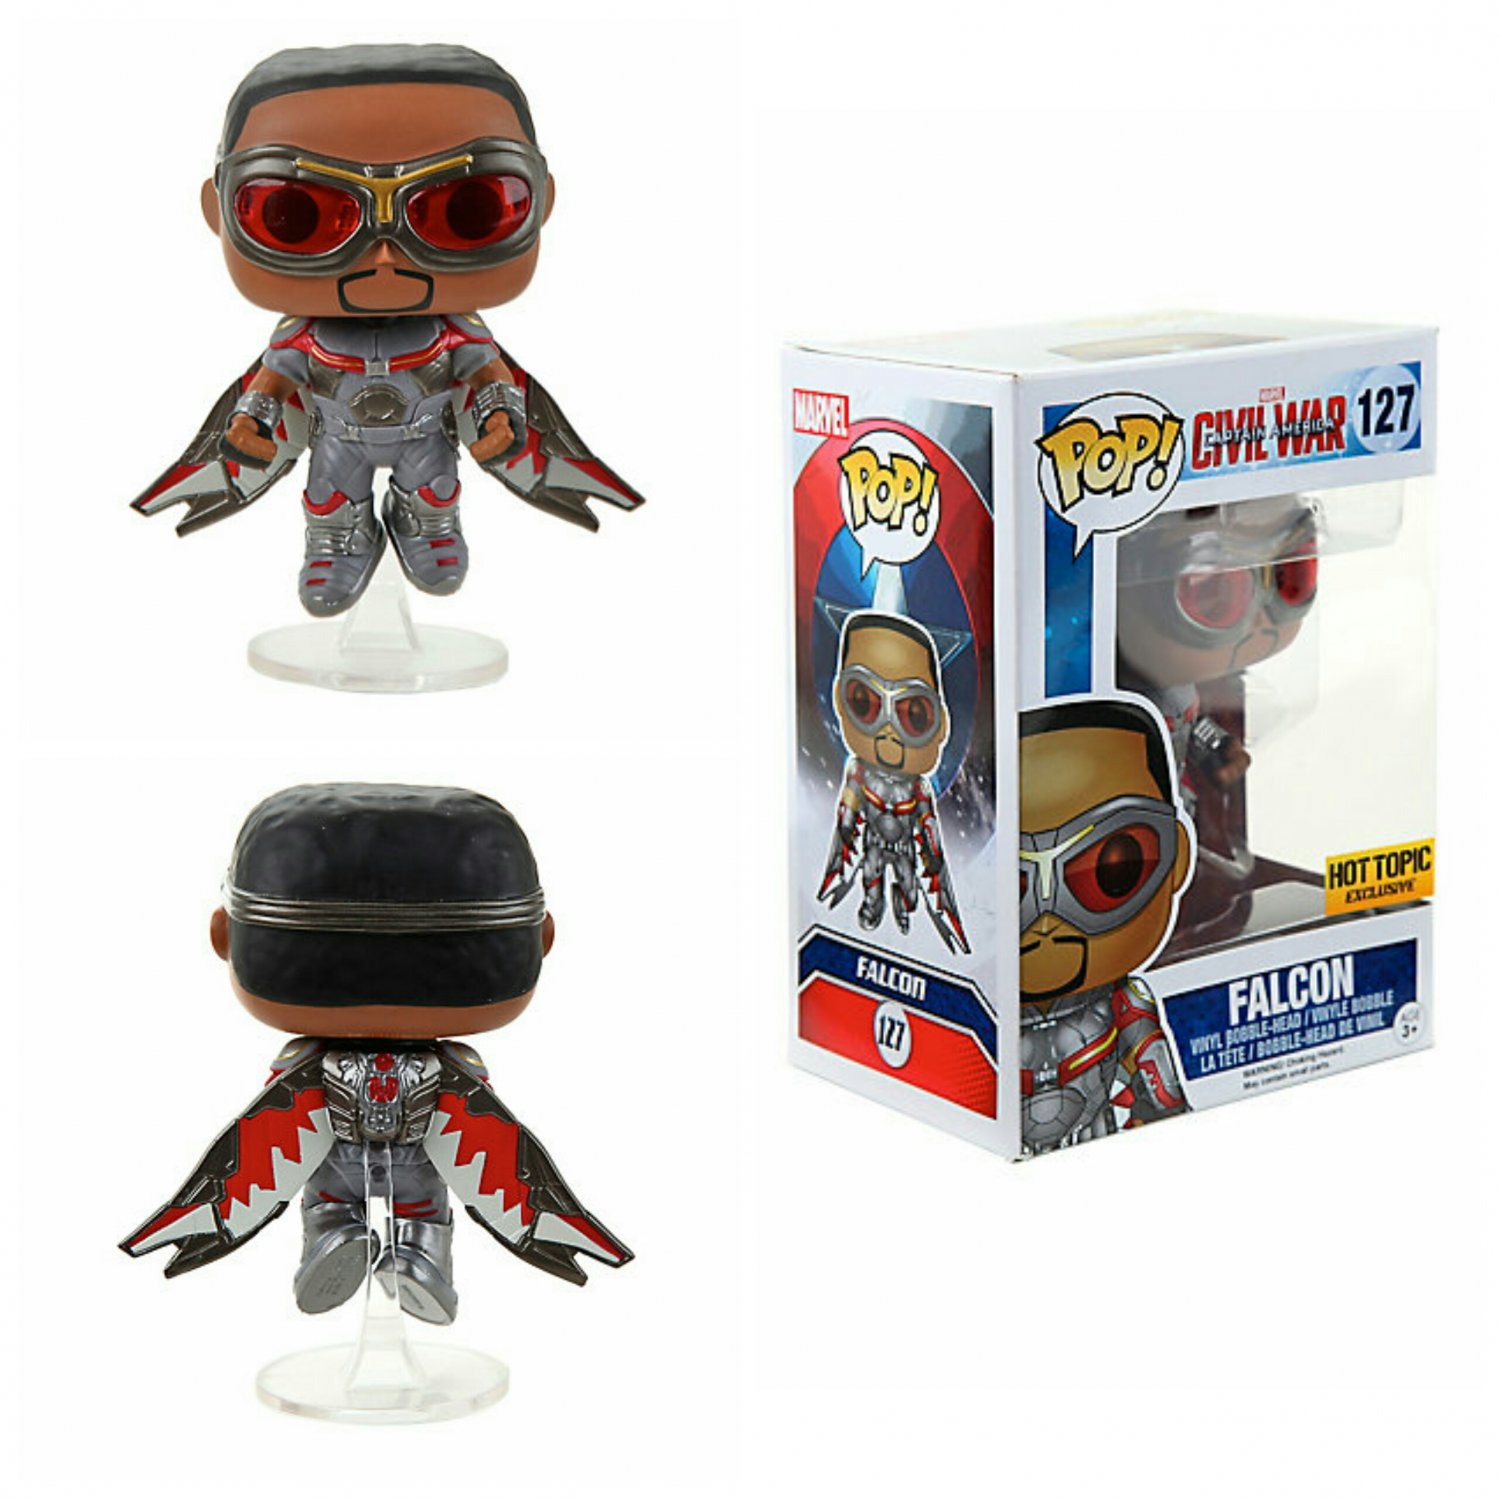 FUNKO Marvel Captain America: Civil War POP! Falcon Bobble-head Figure Hot Topic Exclusive